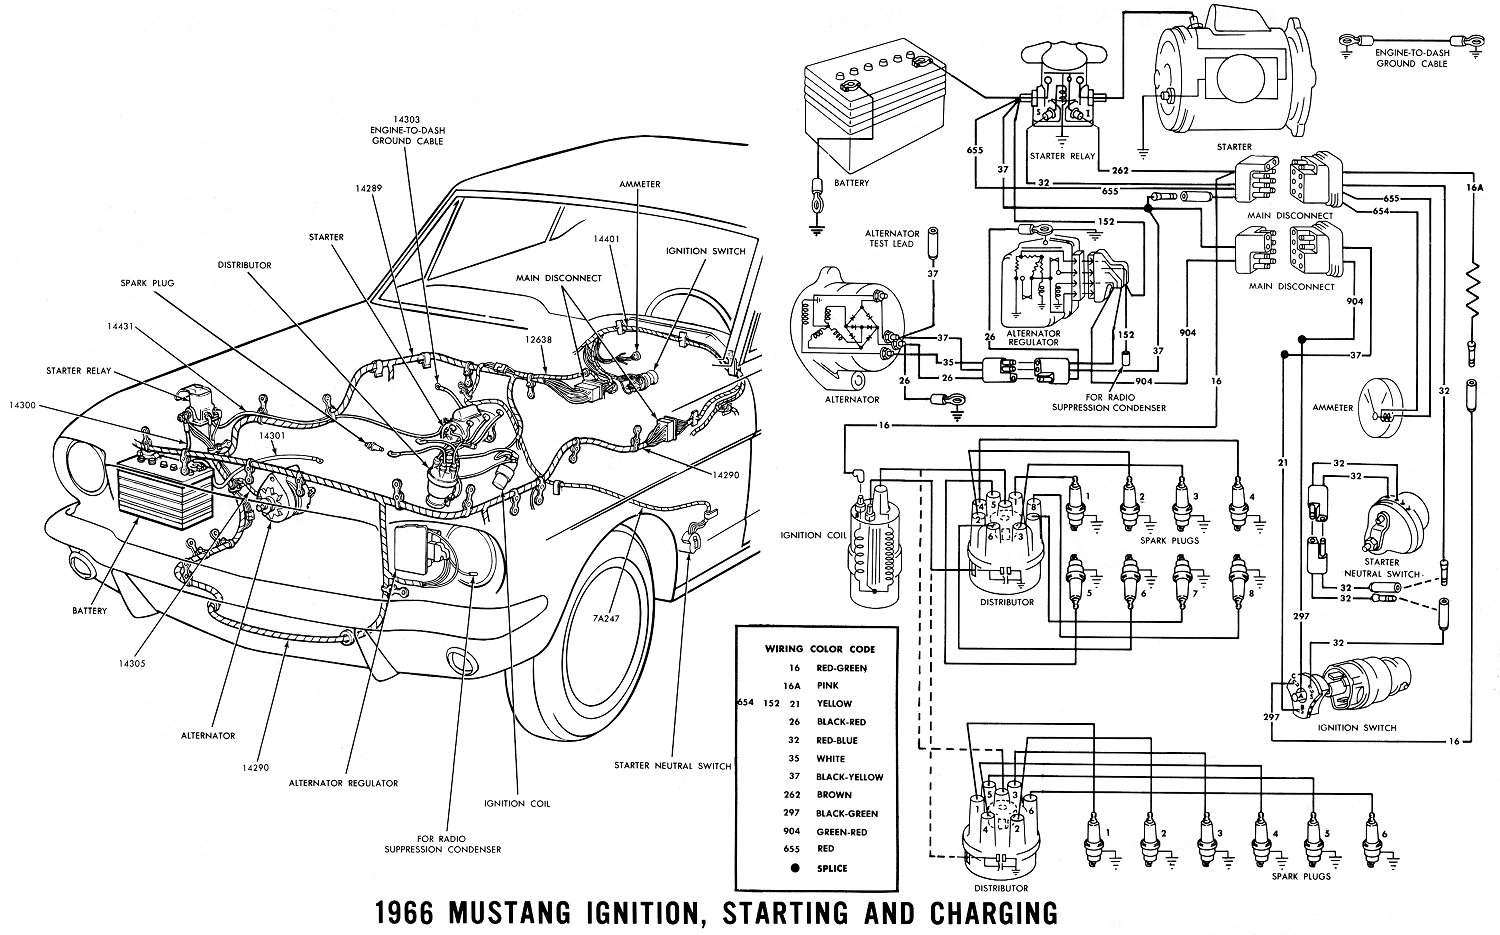 66ignit 1966 mustang wiring diagrams average joe restoration ignition wiring diagram at mifinder.co